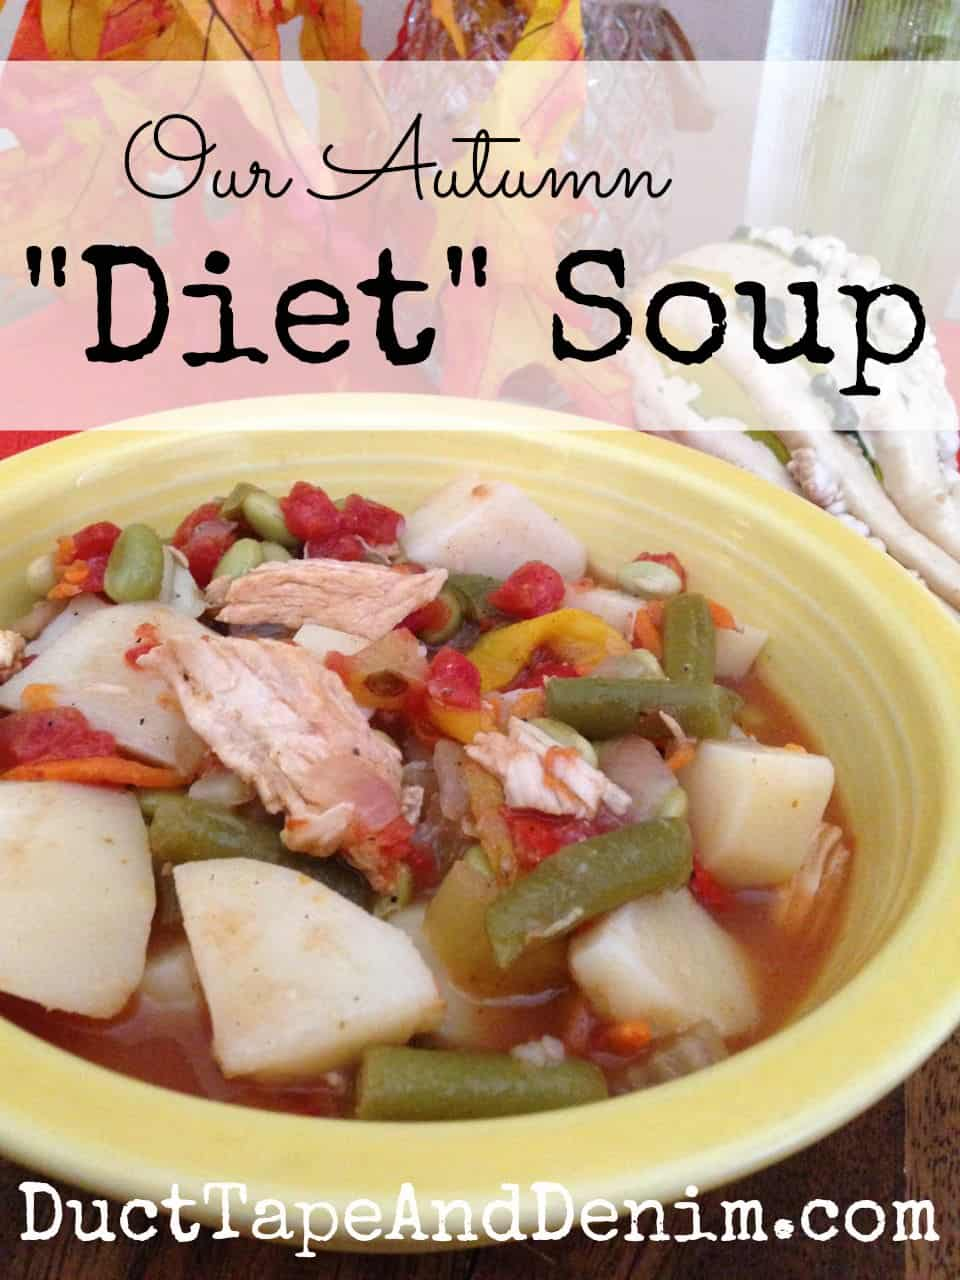 Diet Soup Recipe with Chicken – My Family's Favorite!